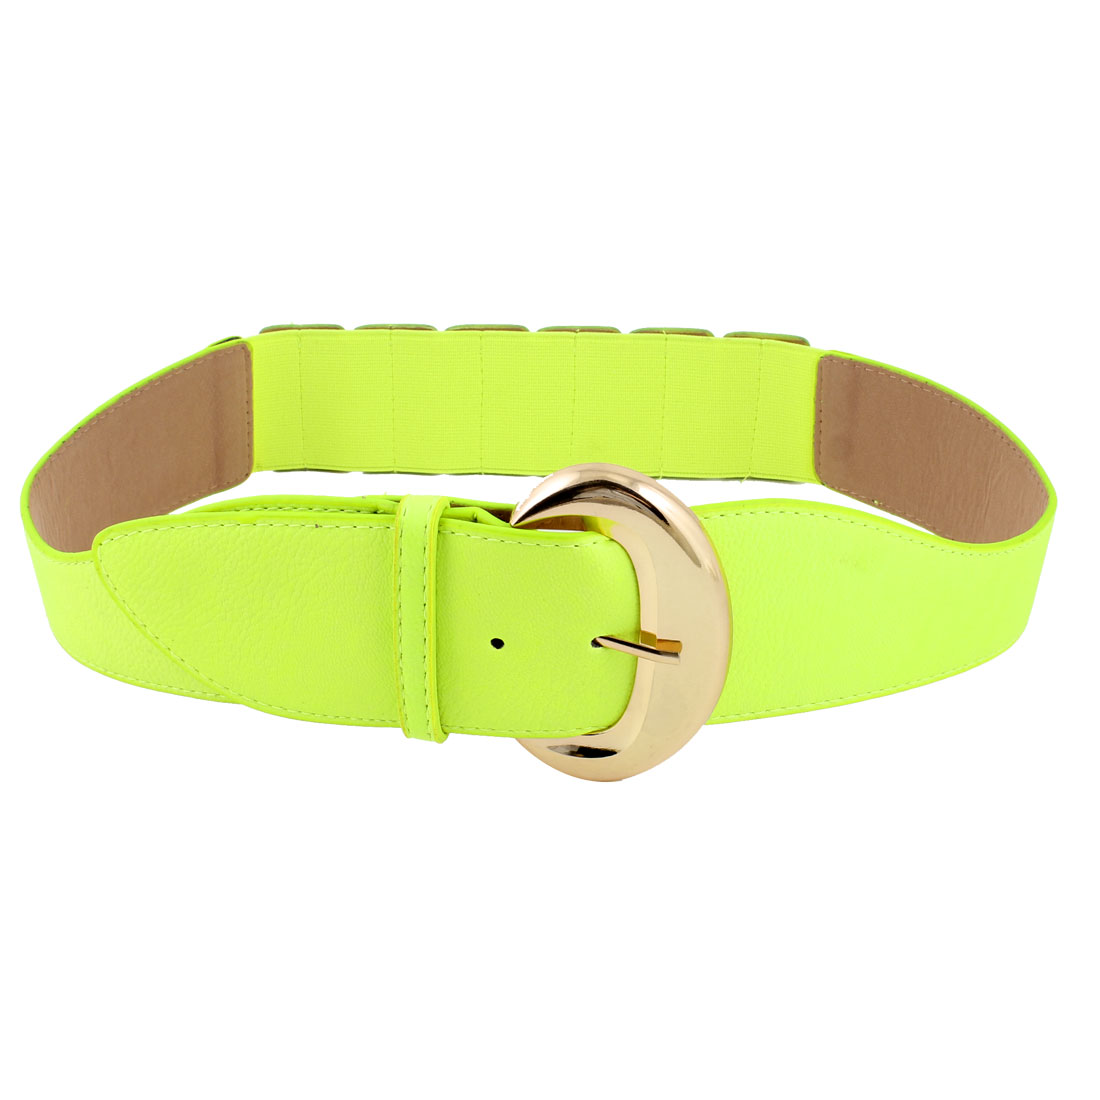 Acinaciform Faux Leather Elastic Band Waist Ornament Belt Bright Green for Women